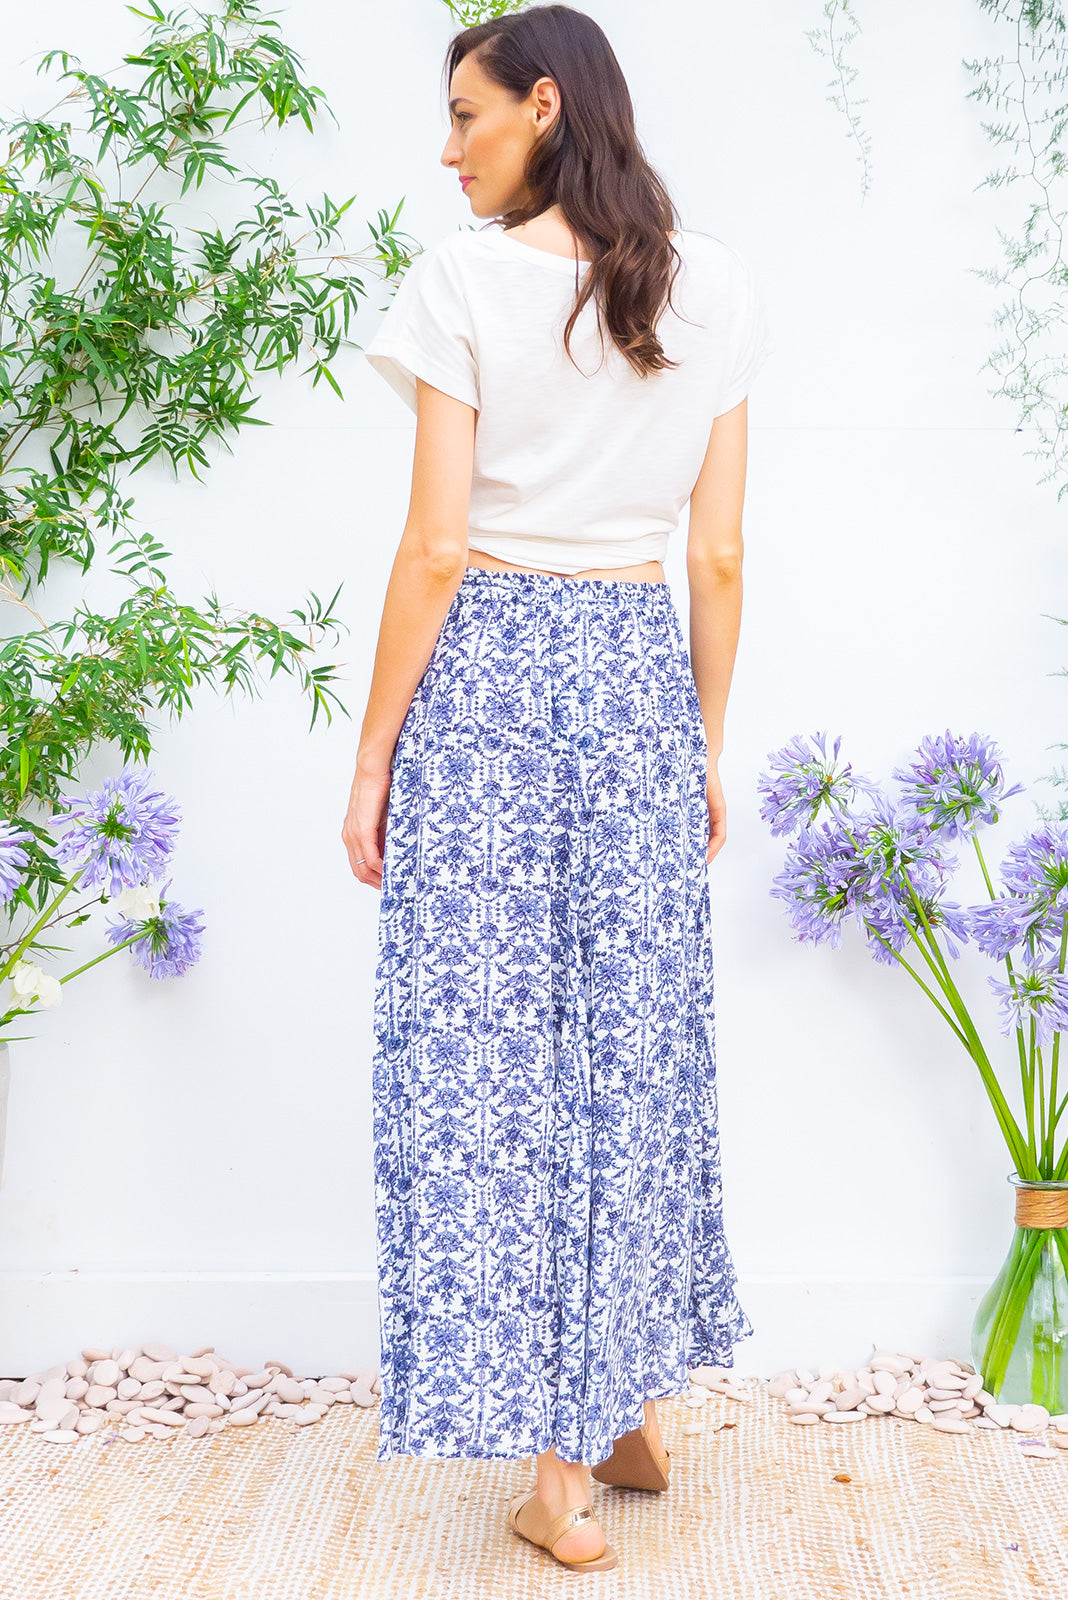 Catalina Skirt Corfu Blue bohemian inspired maxi skirt in a crinkle textured on a bright white and blue printed rayon